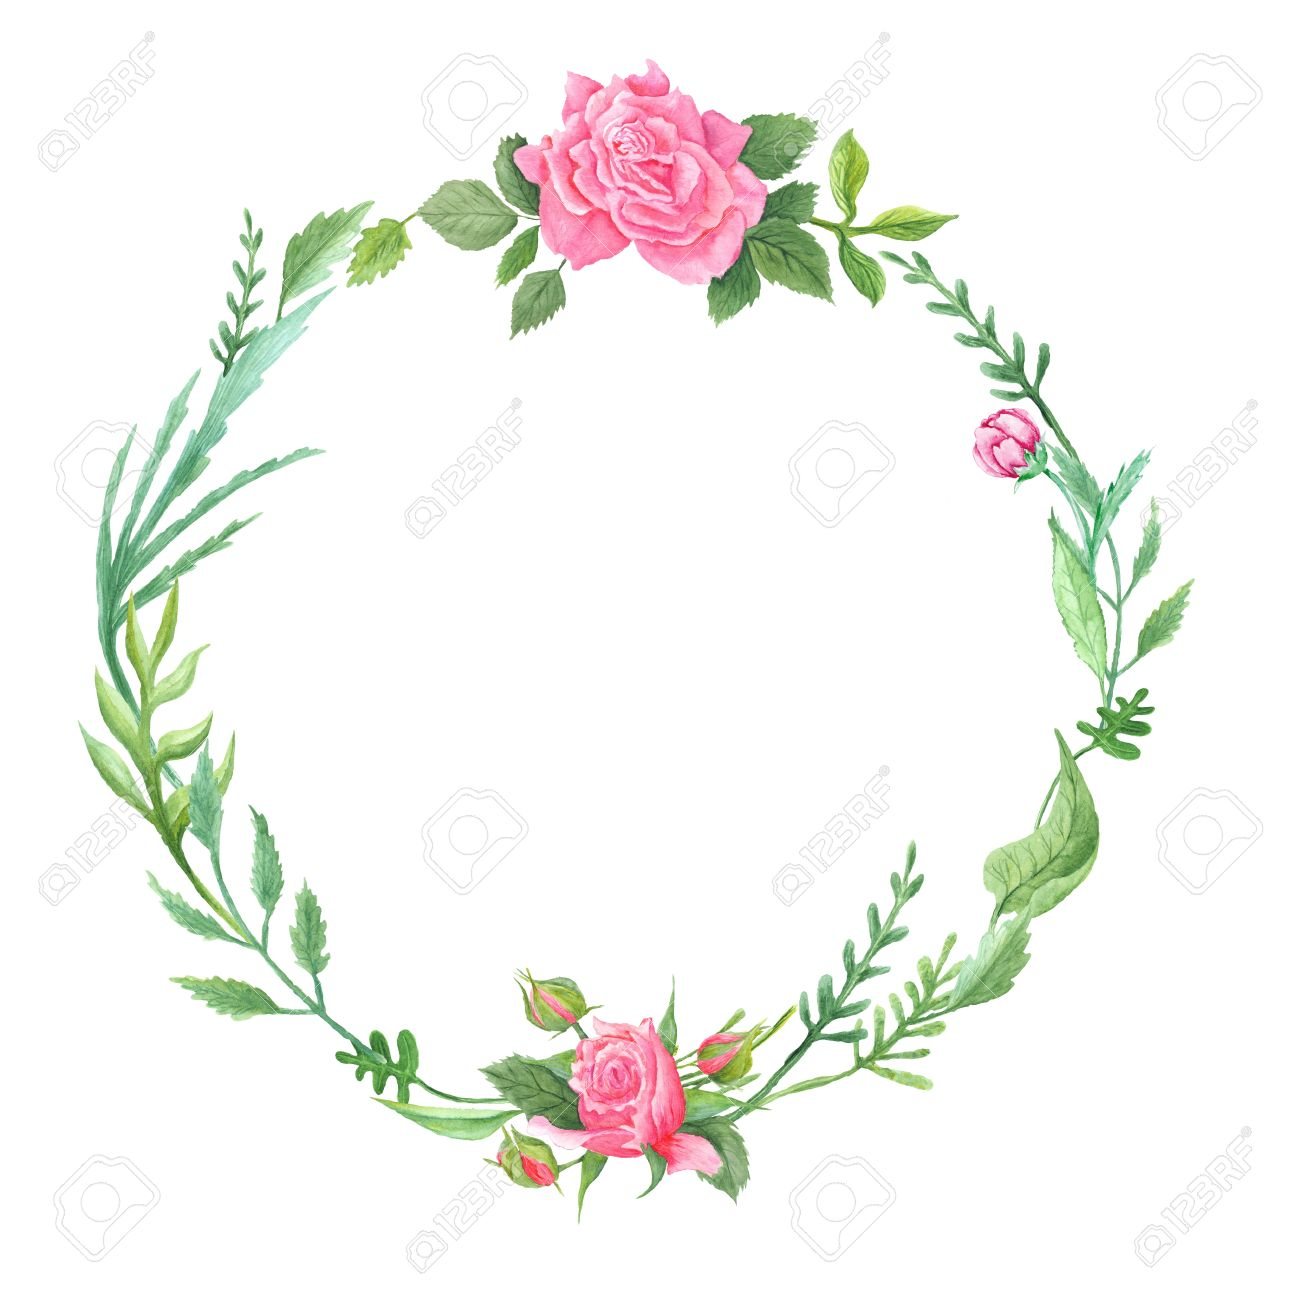 Hand-painted shabby chic natural eco frame with leaves and pink flowers for wedding invitations, event cards, photos isolated on white background - 43128239